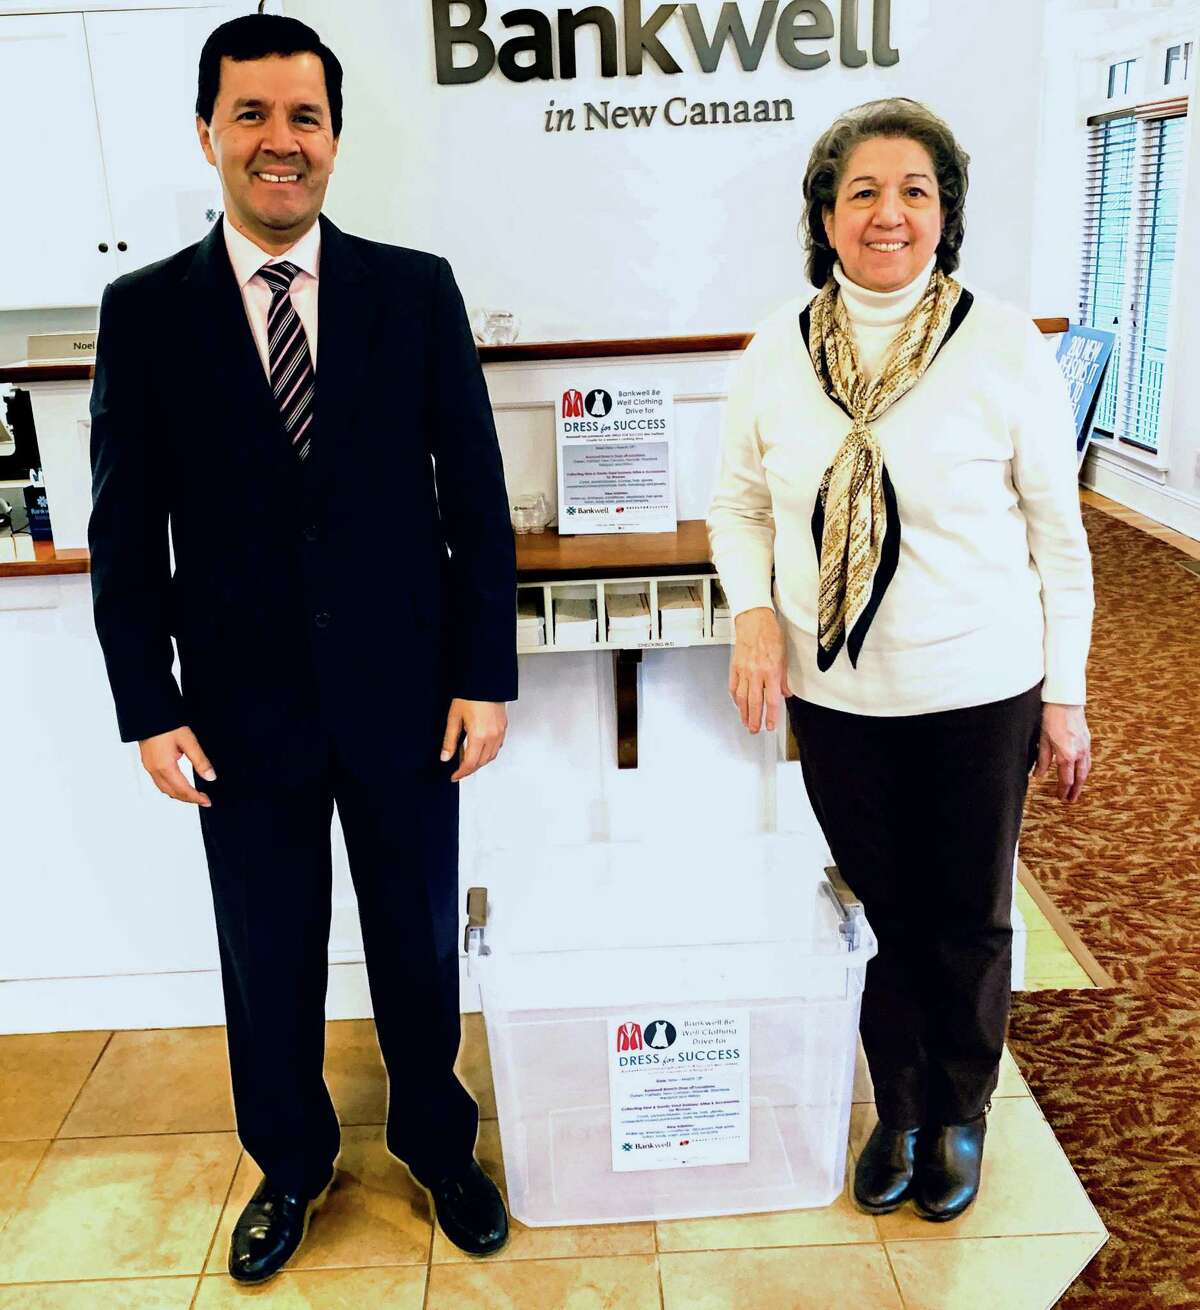 Manuel Rodriguez, left, is assistant branch manager at Bankwell's Cherry Street branch in New Canaan, and Noel Pascarella, is a universal banker at the branch.